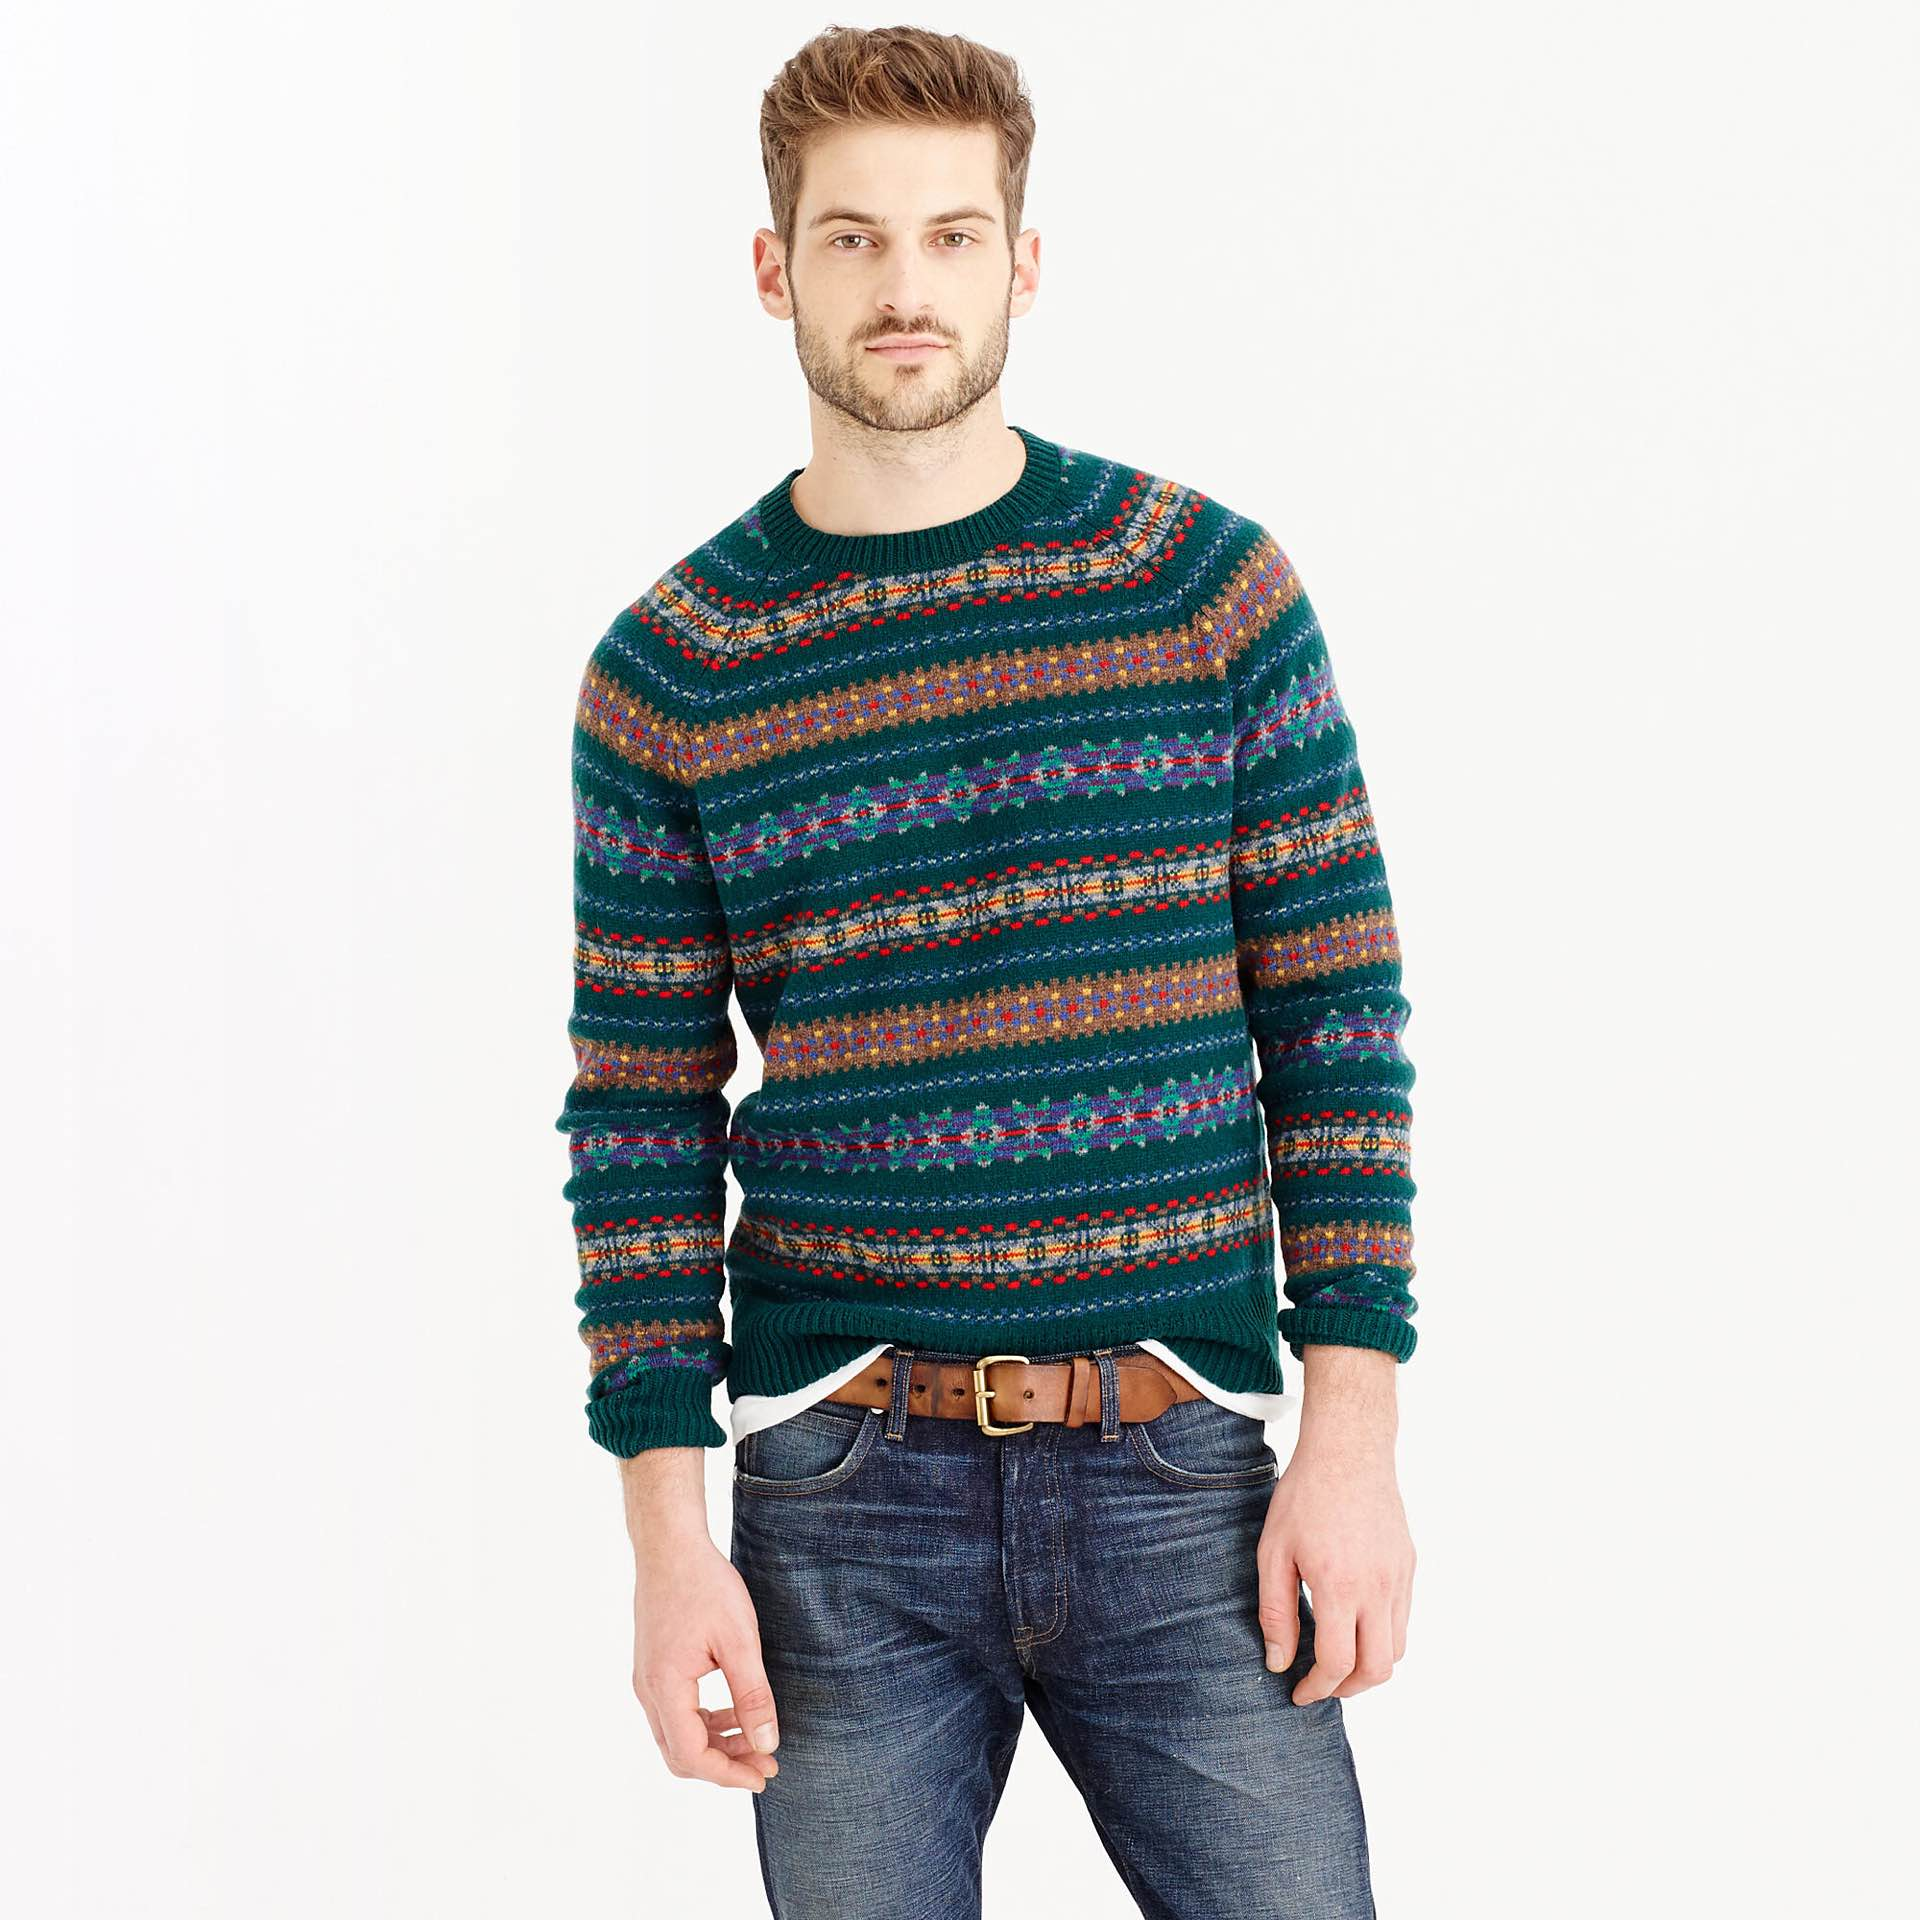 J.Crew's forest fair isle sweater ($80)